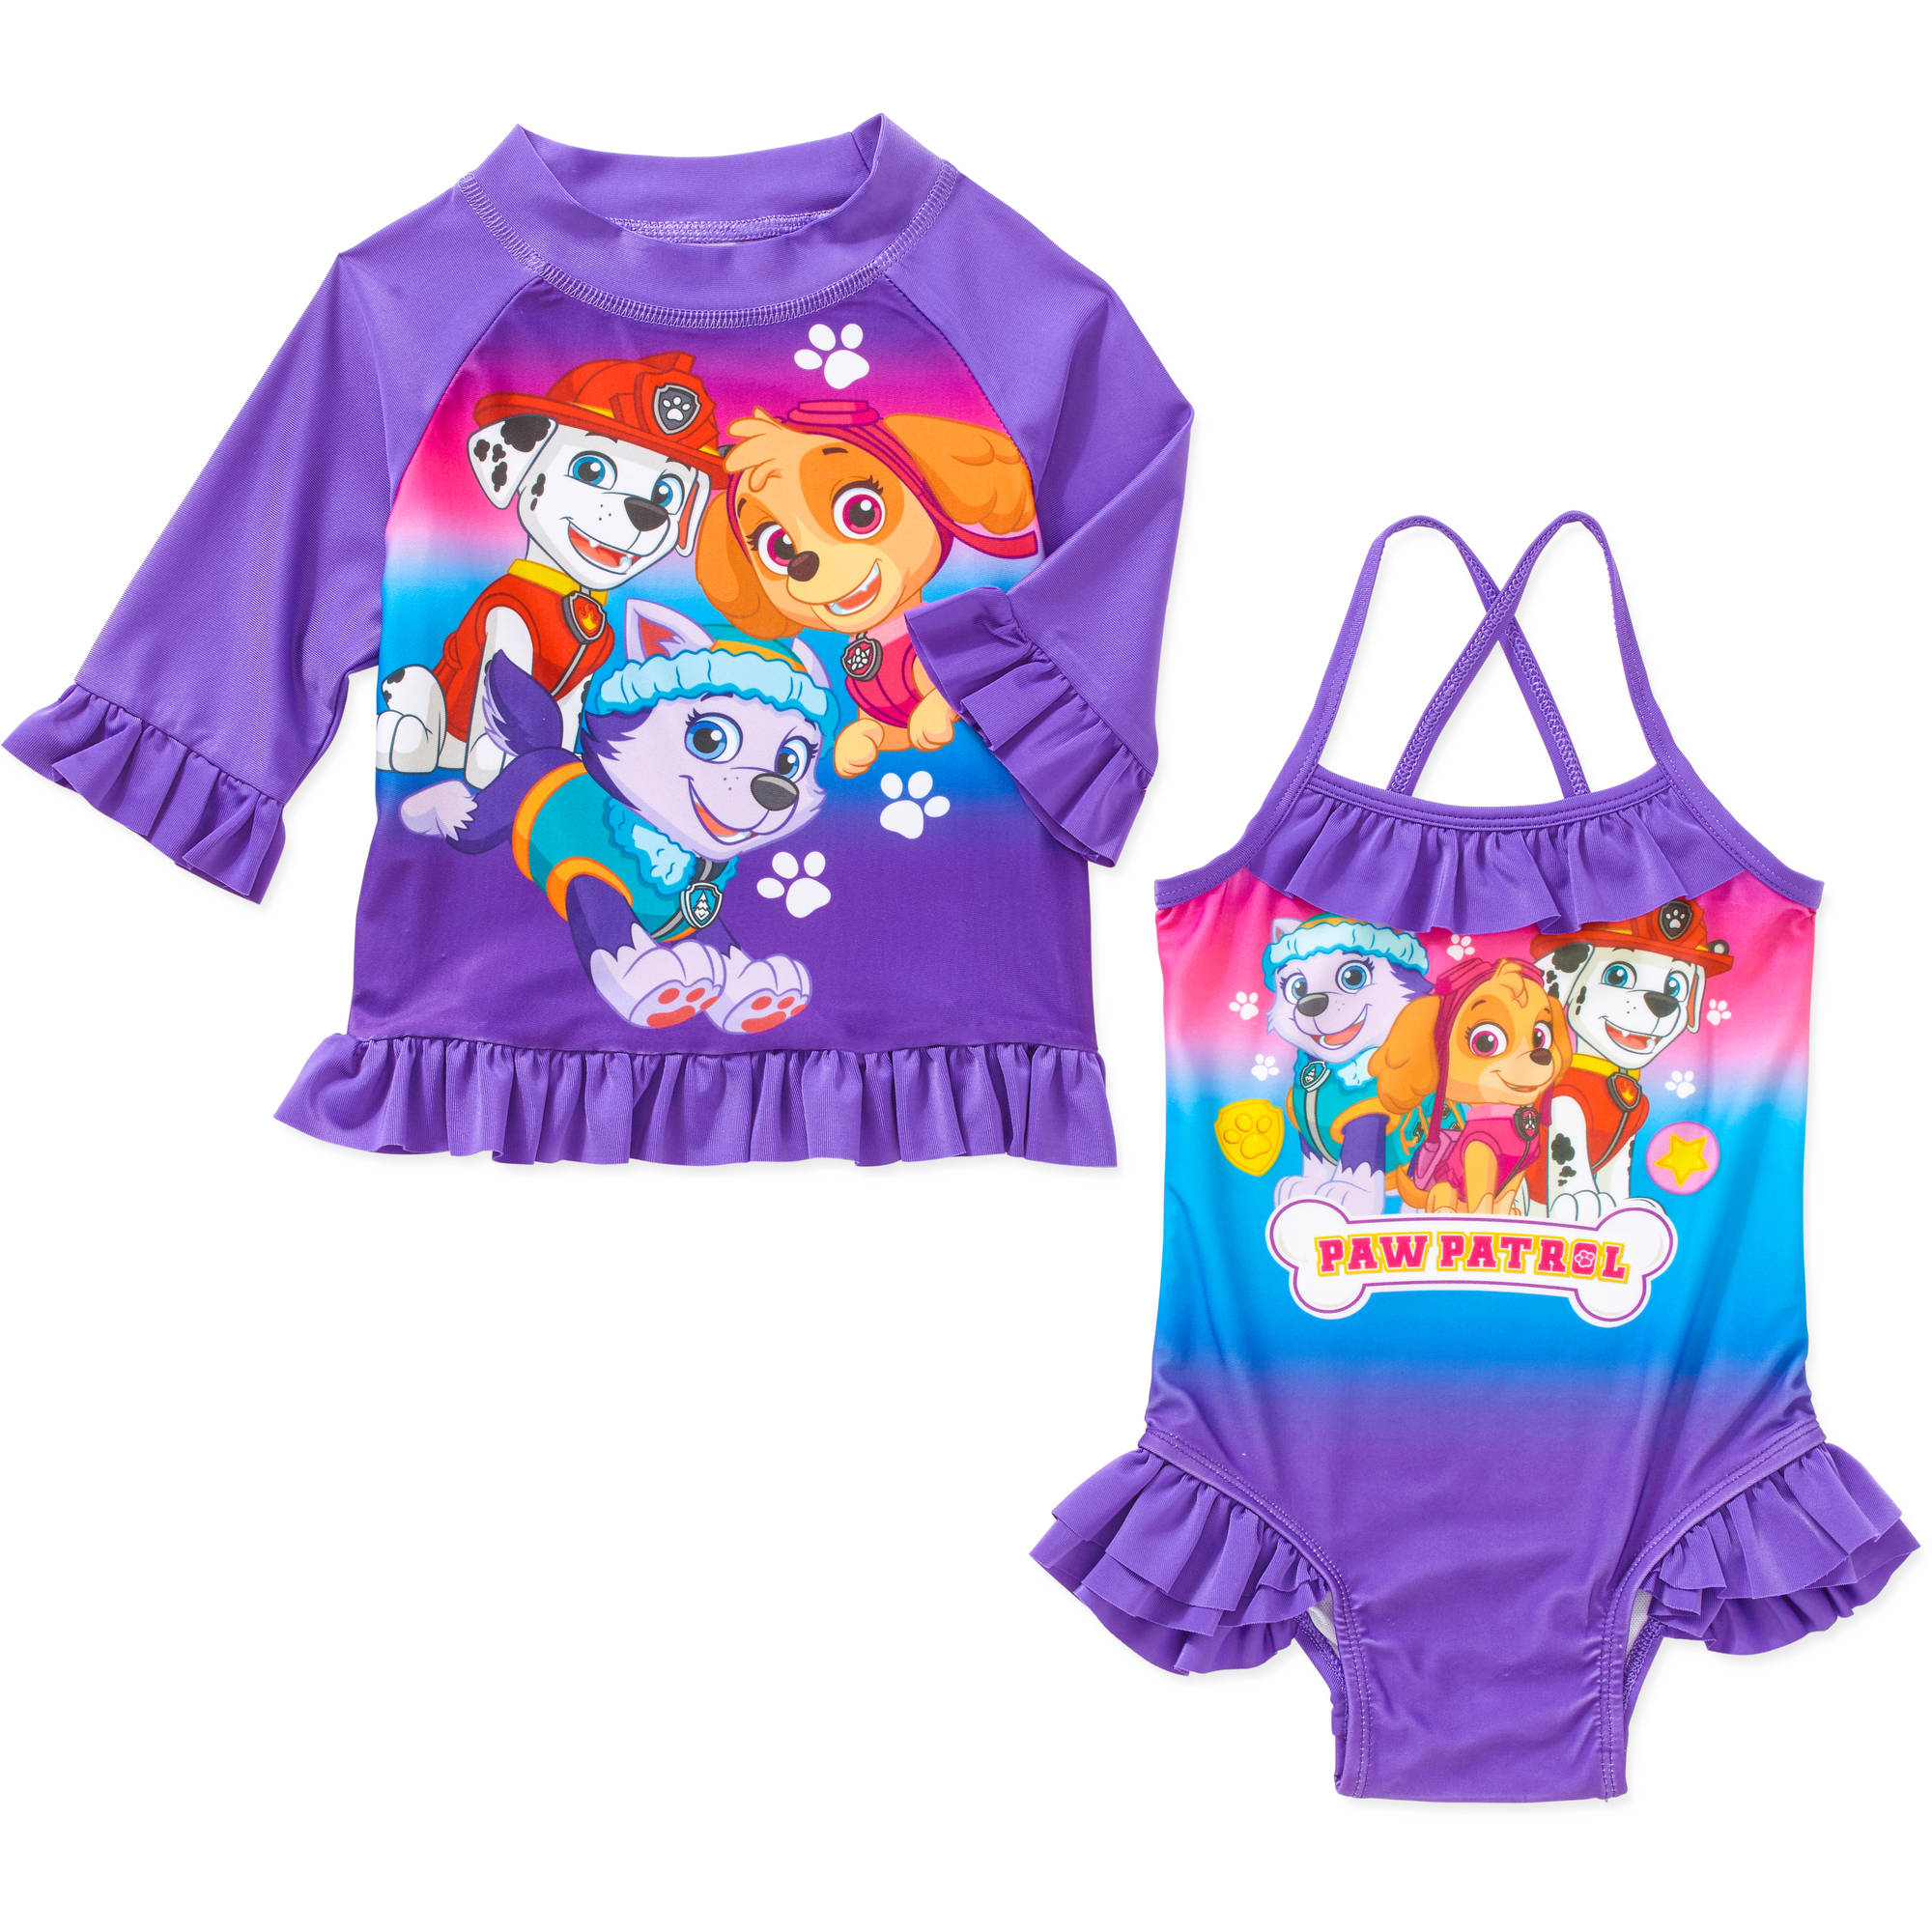 Toddler Girl Swim Set with Swim Suit and Rash Guard